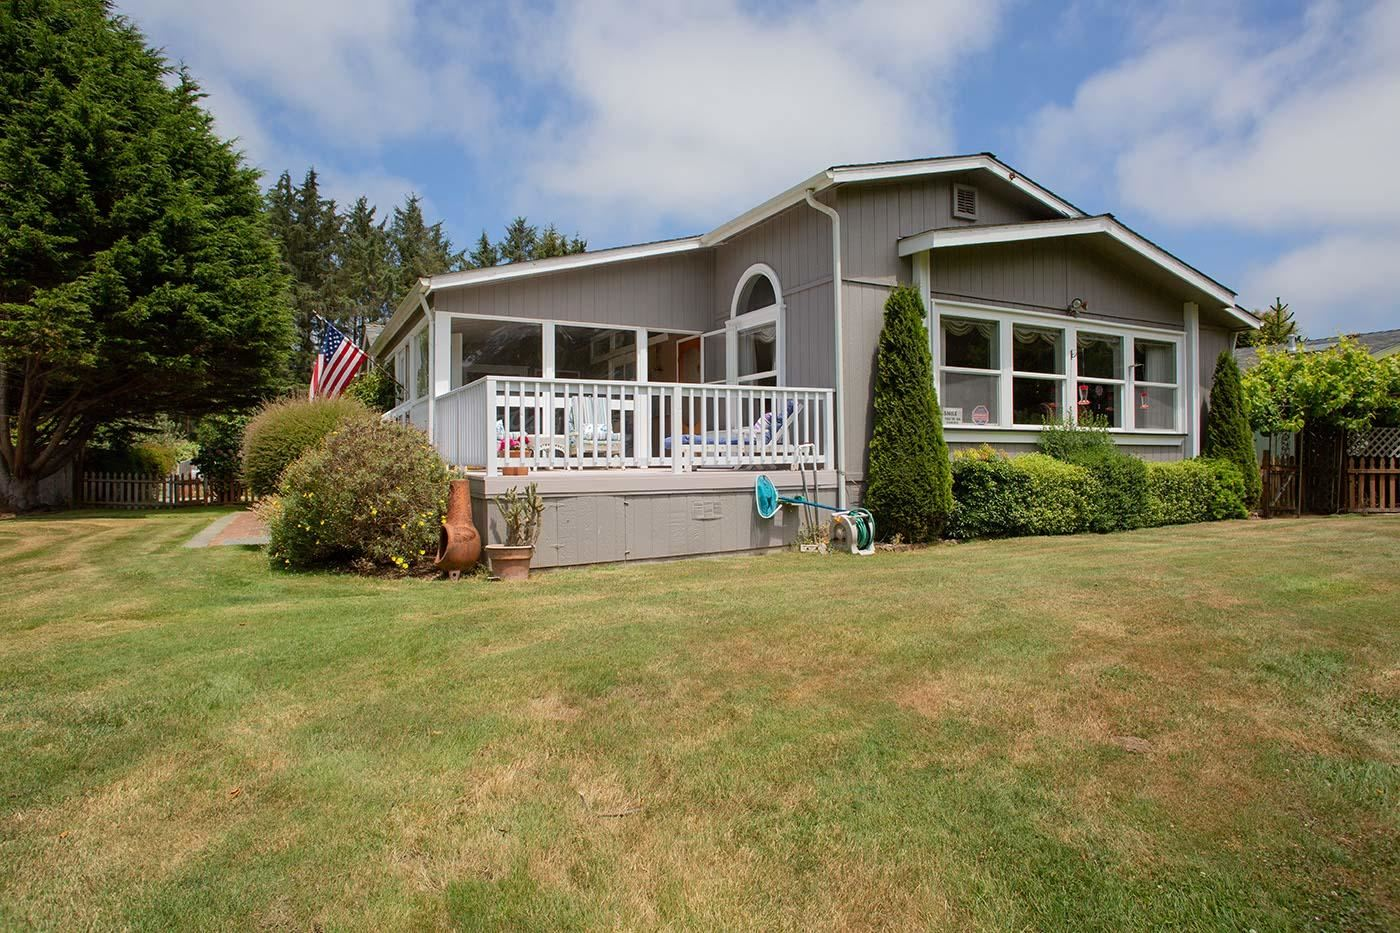 2580 Central Avenue, McKinleyville, CA 95519 - MLS#: 256875